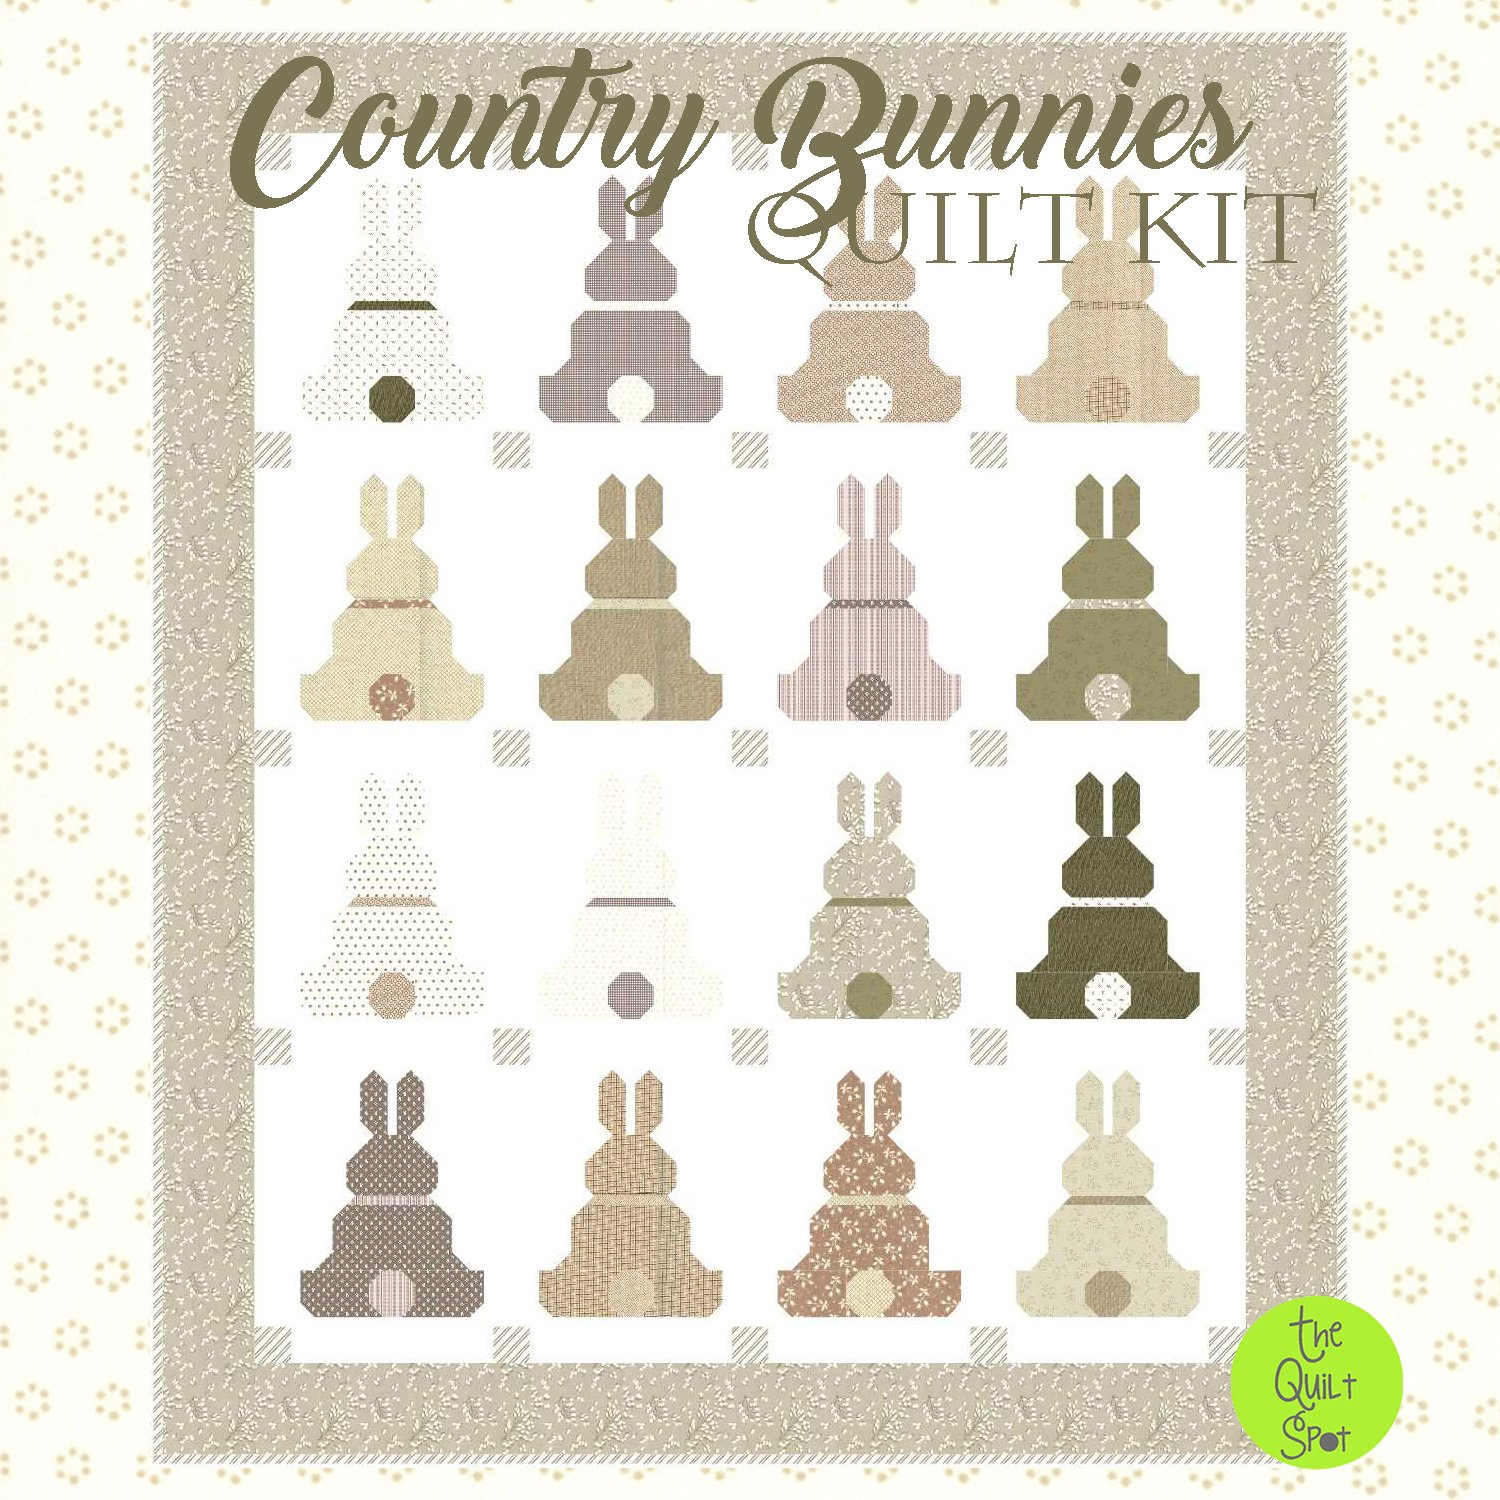 Country Bunnies Quilt Kit - Soft Taupe Edition